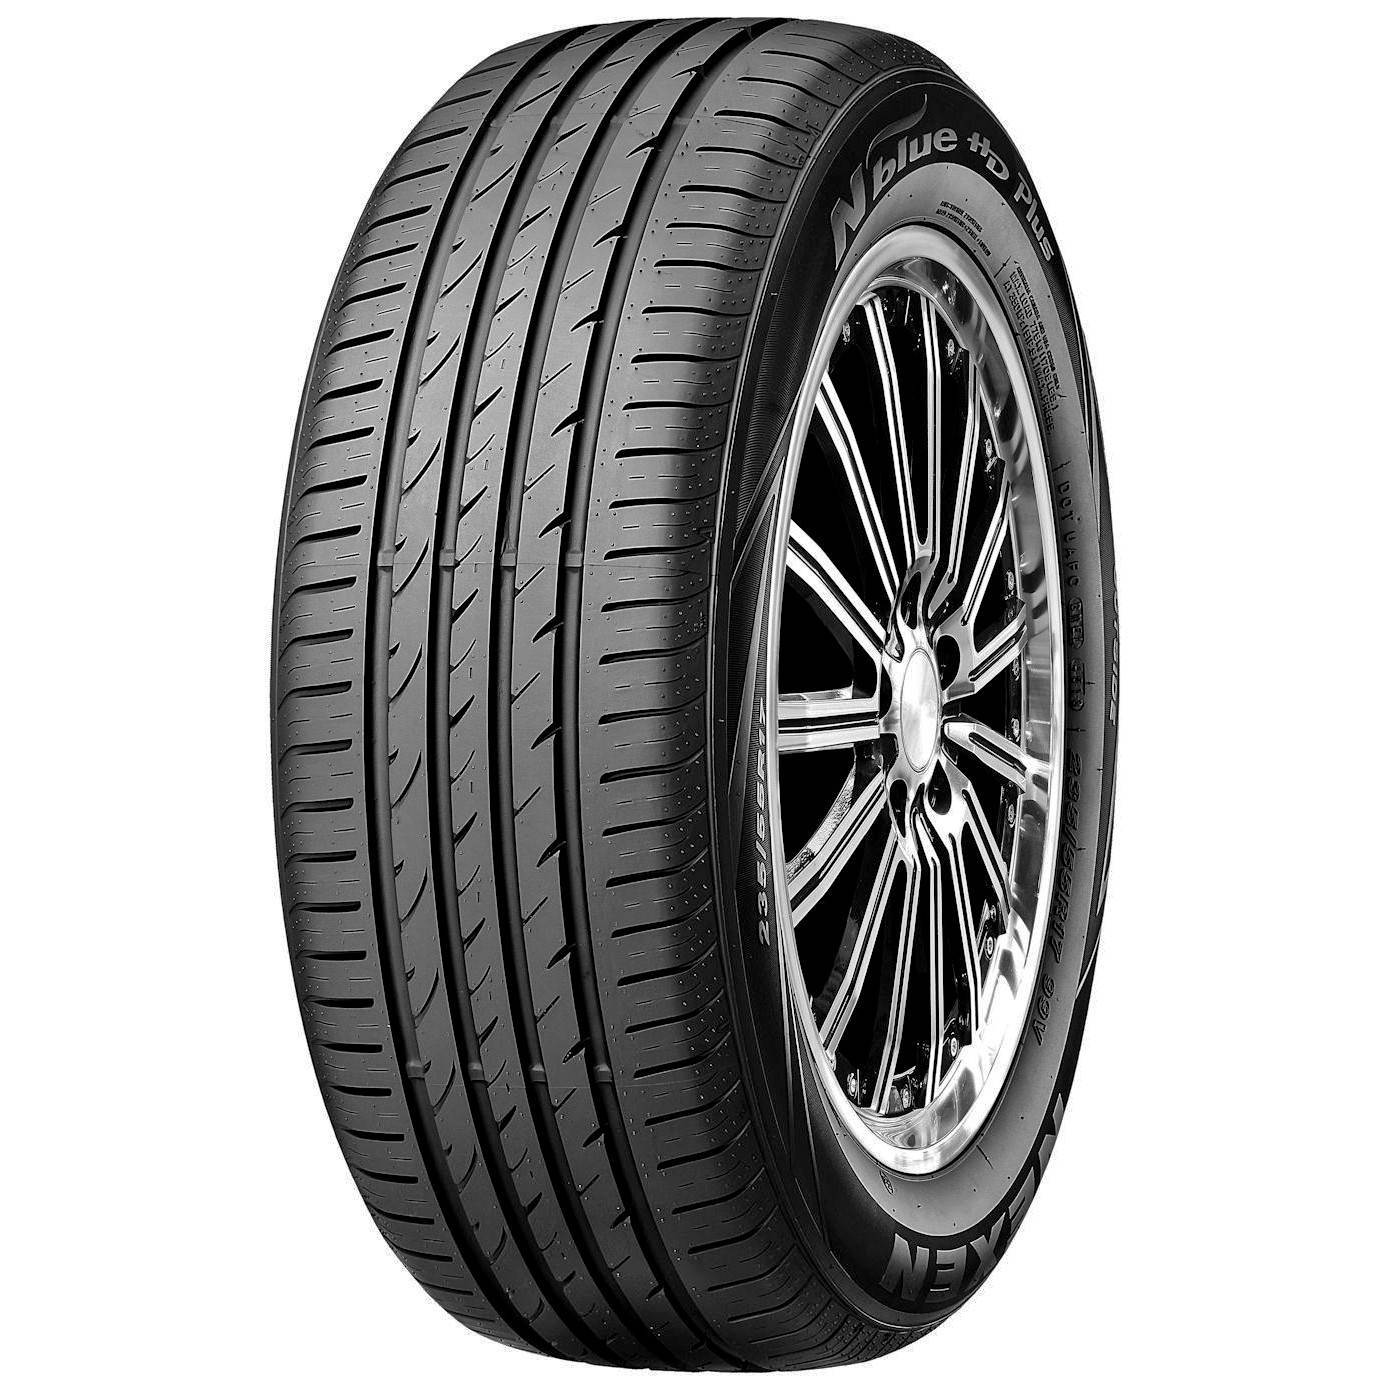 215/50R17 XL 95V N-BLUE HD PLUS NEXEN/лето